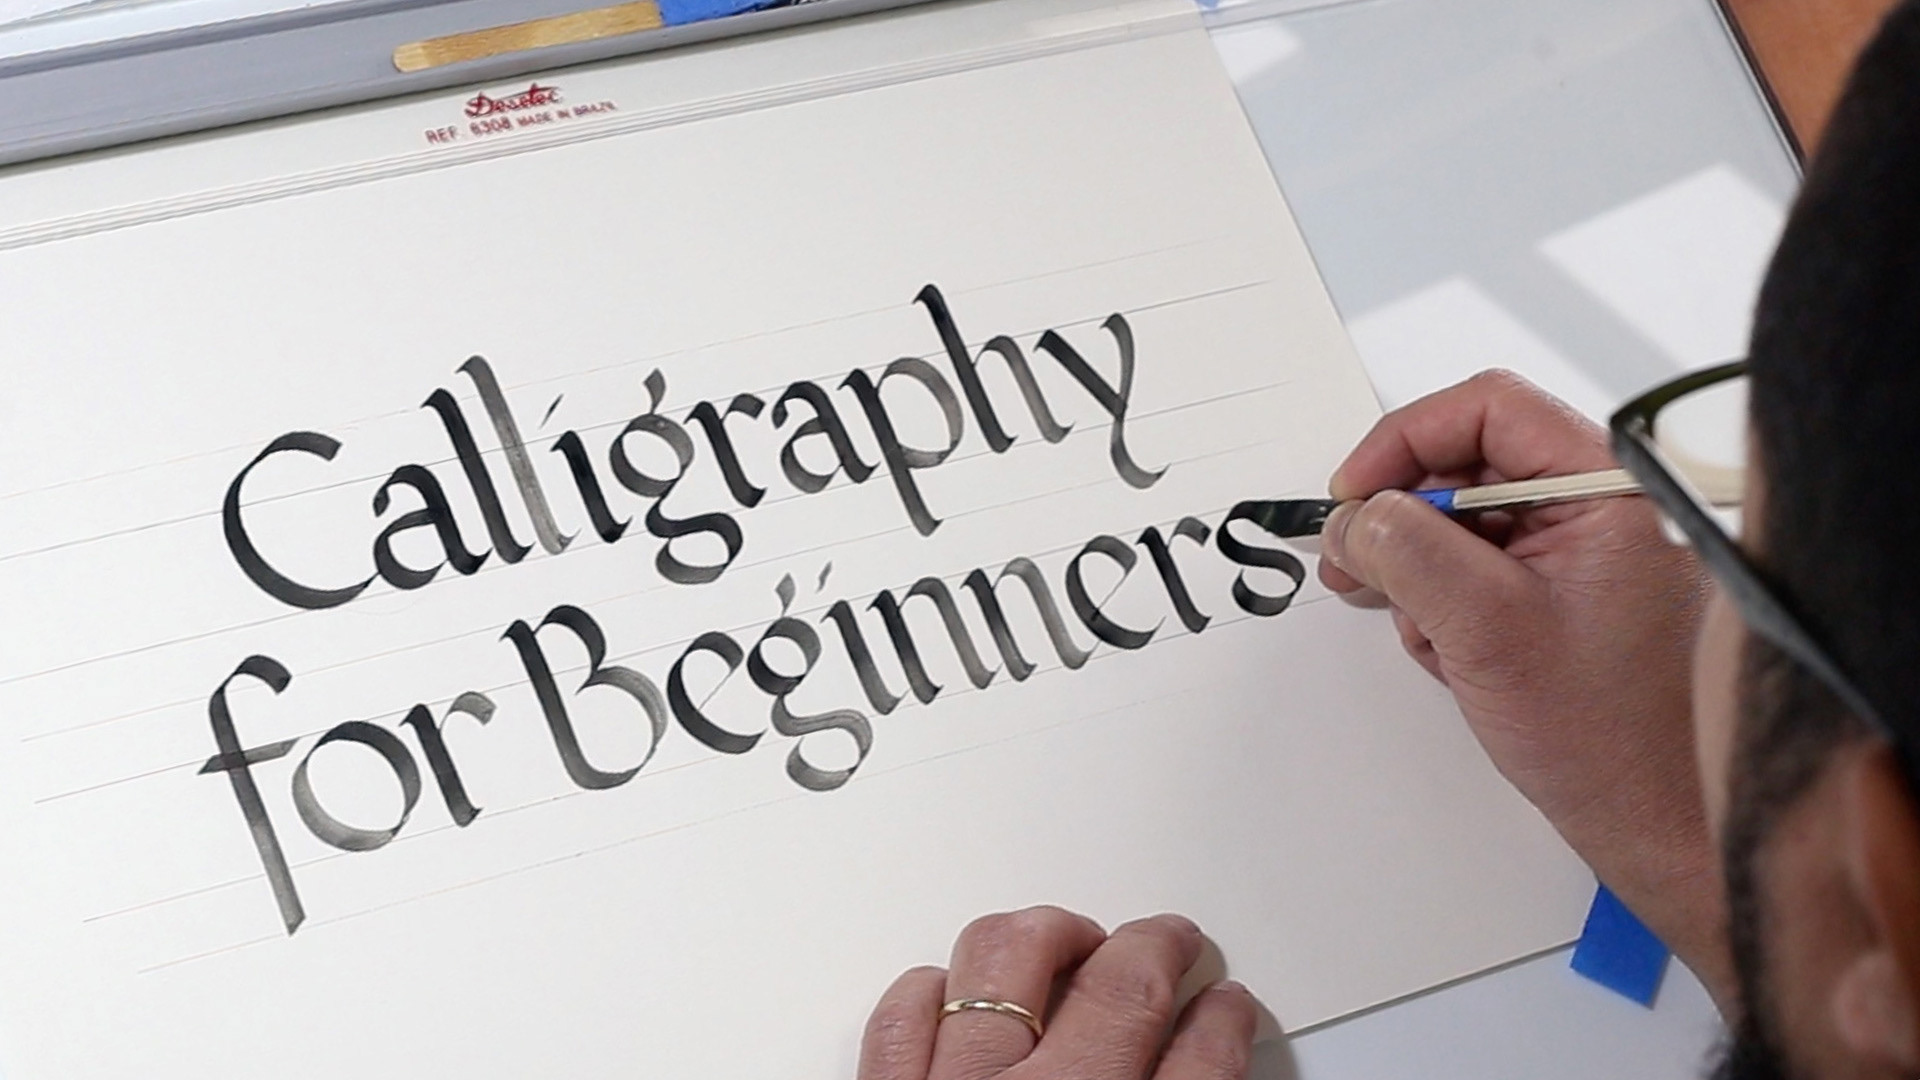 Jackson Alves Online Calligraphy Class 1 The